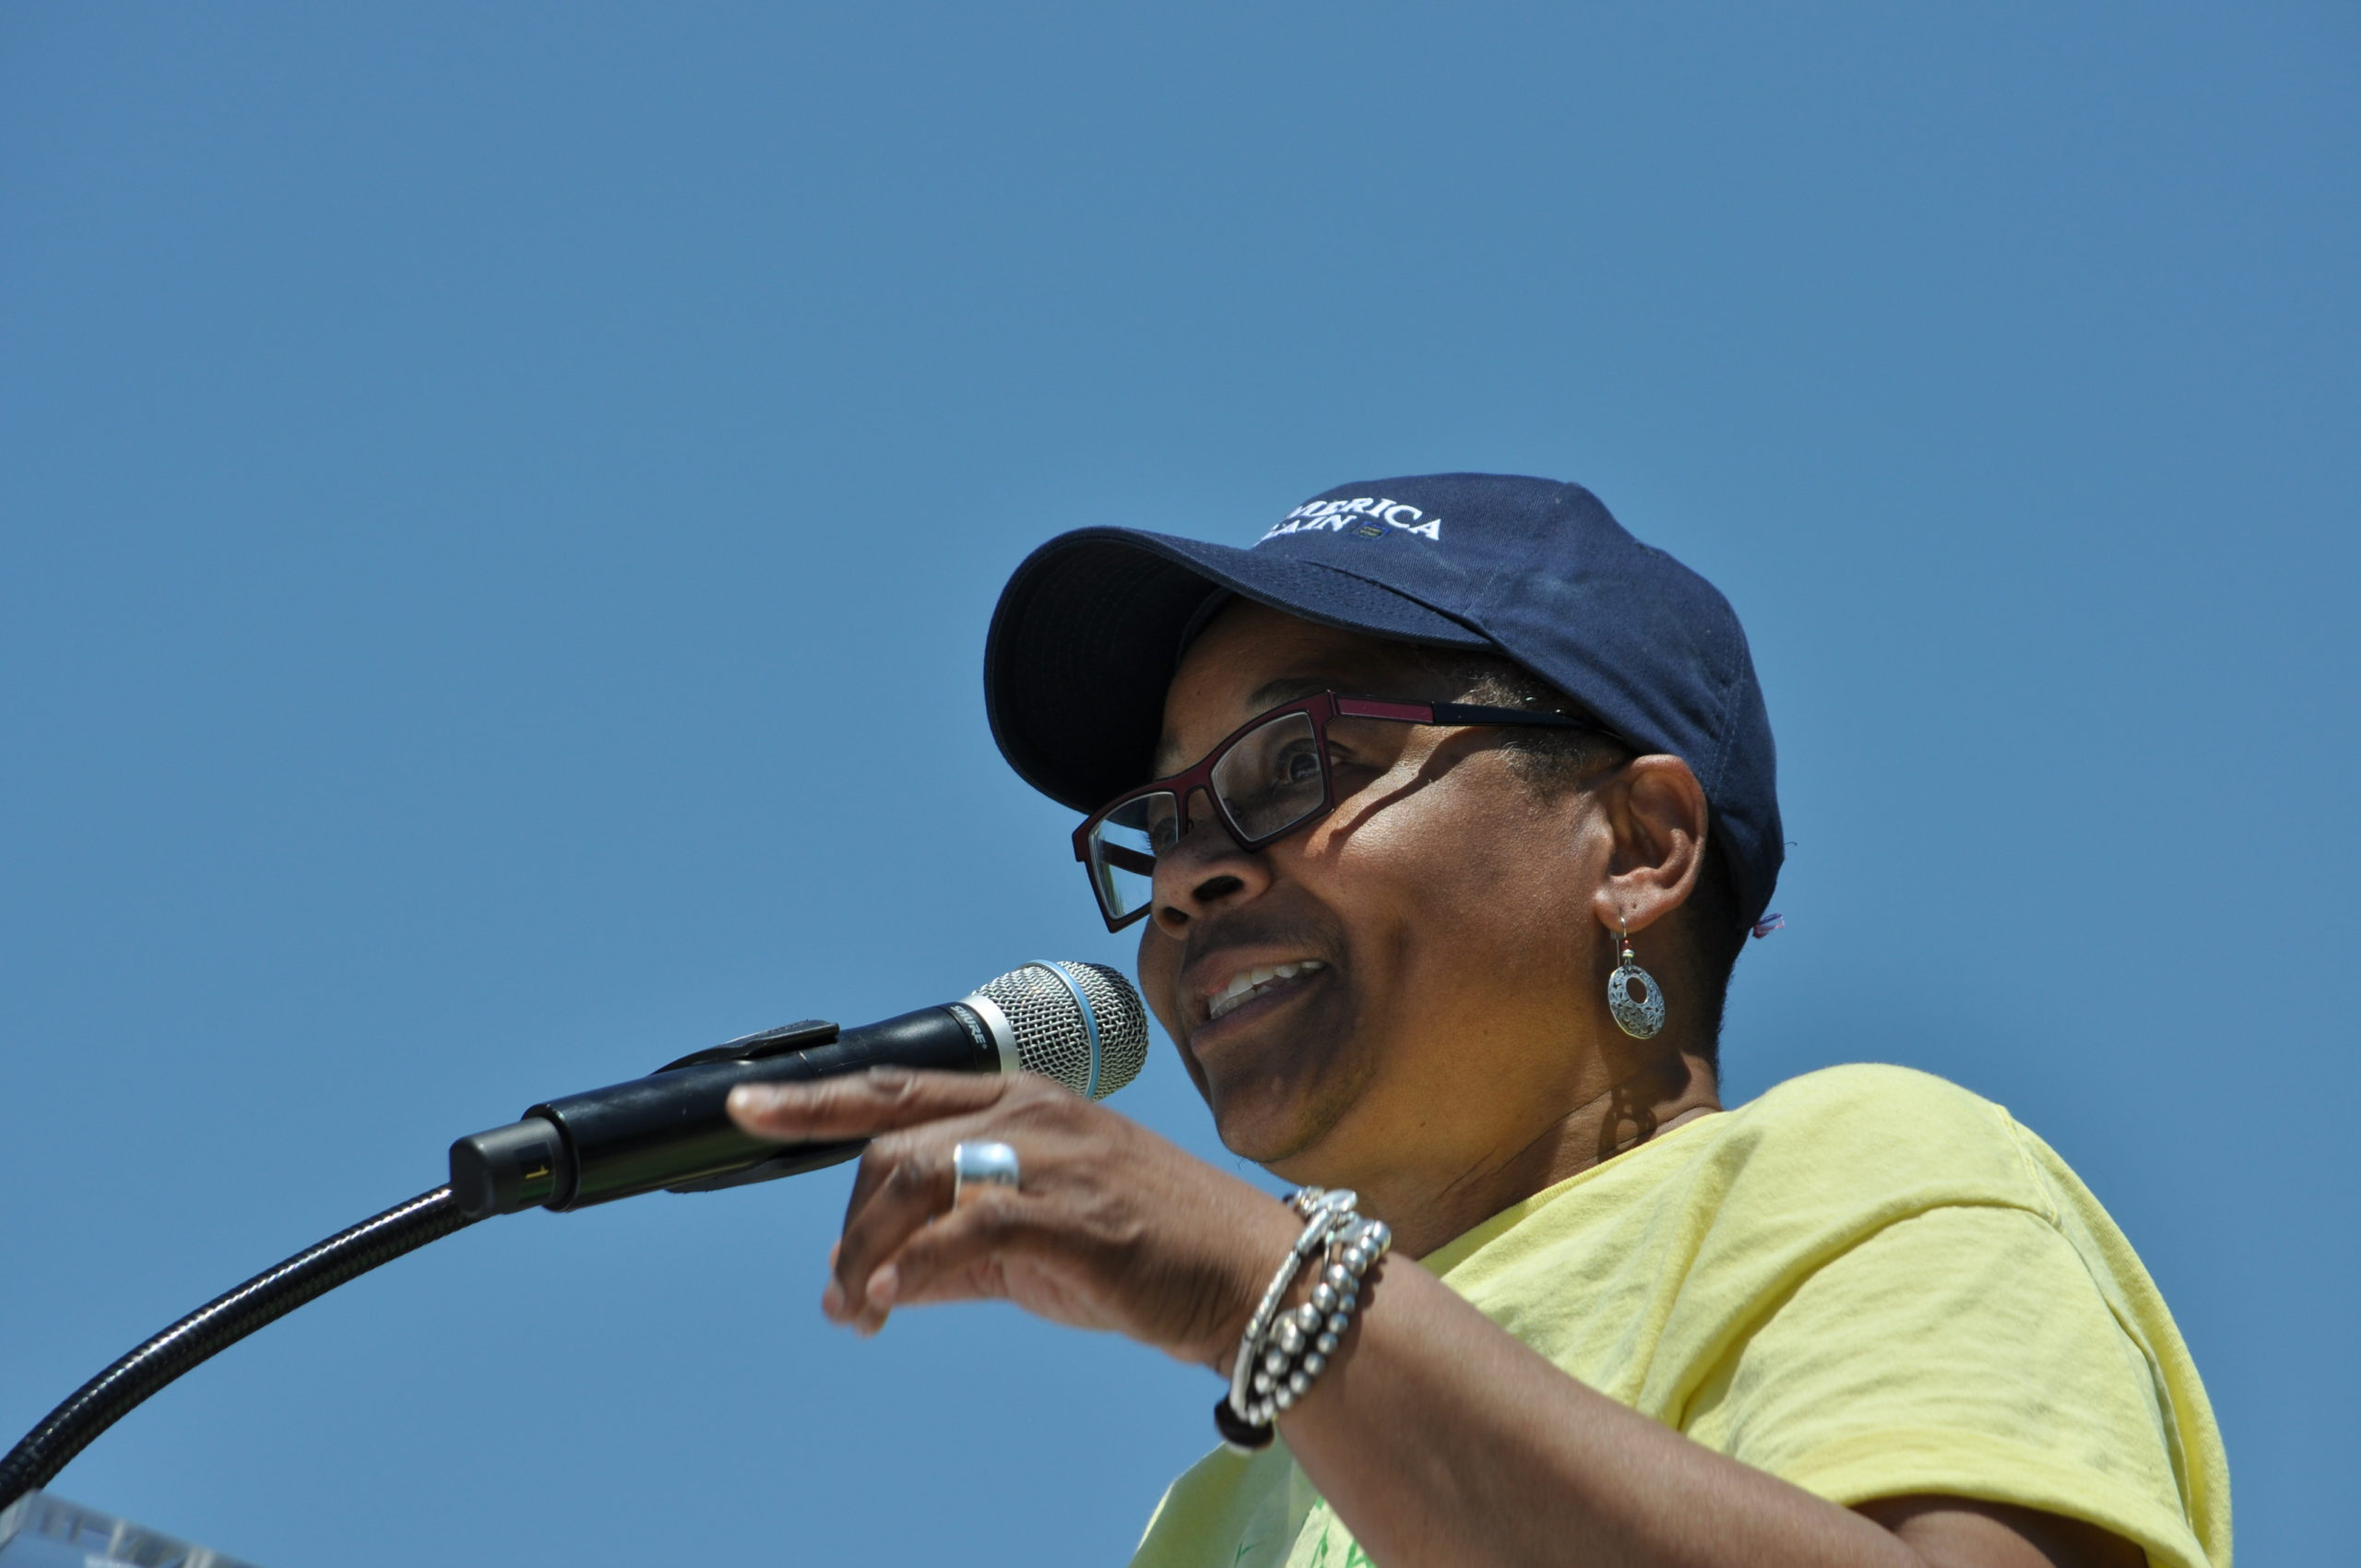 Speaking at Equality March